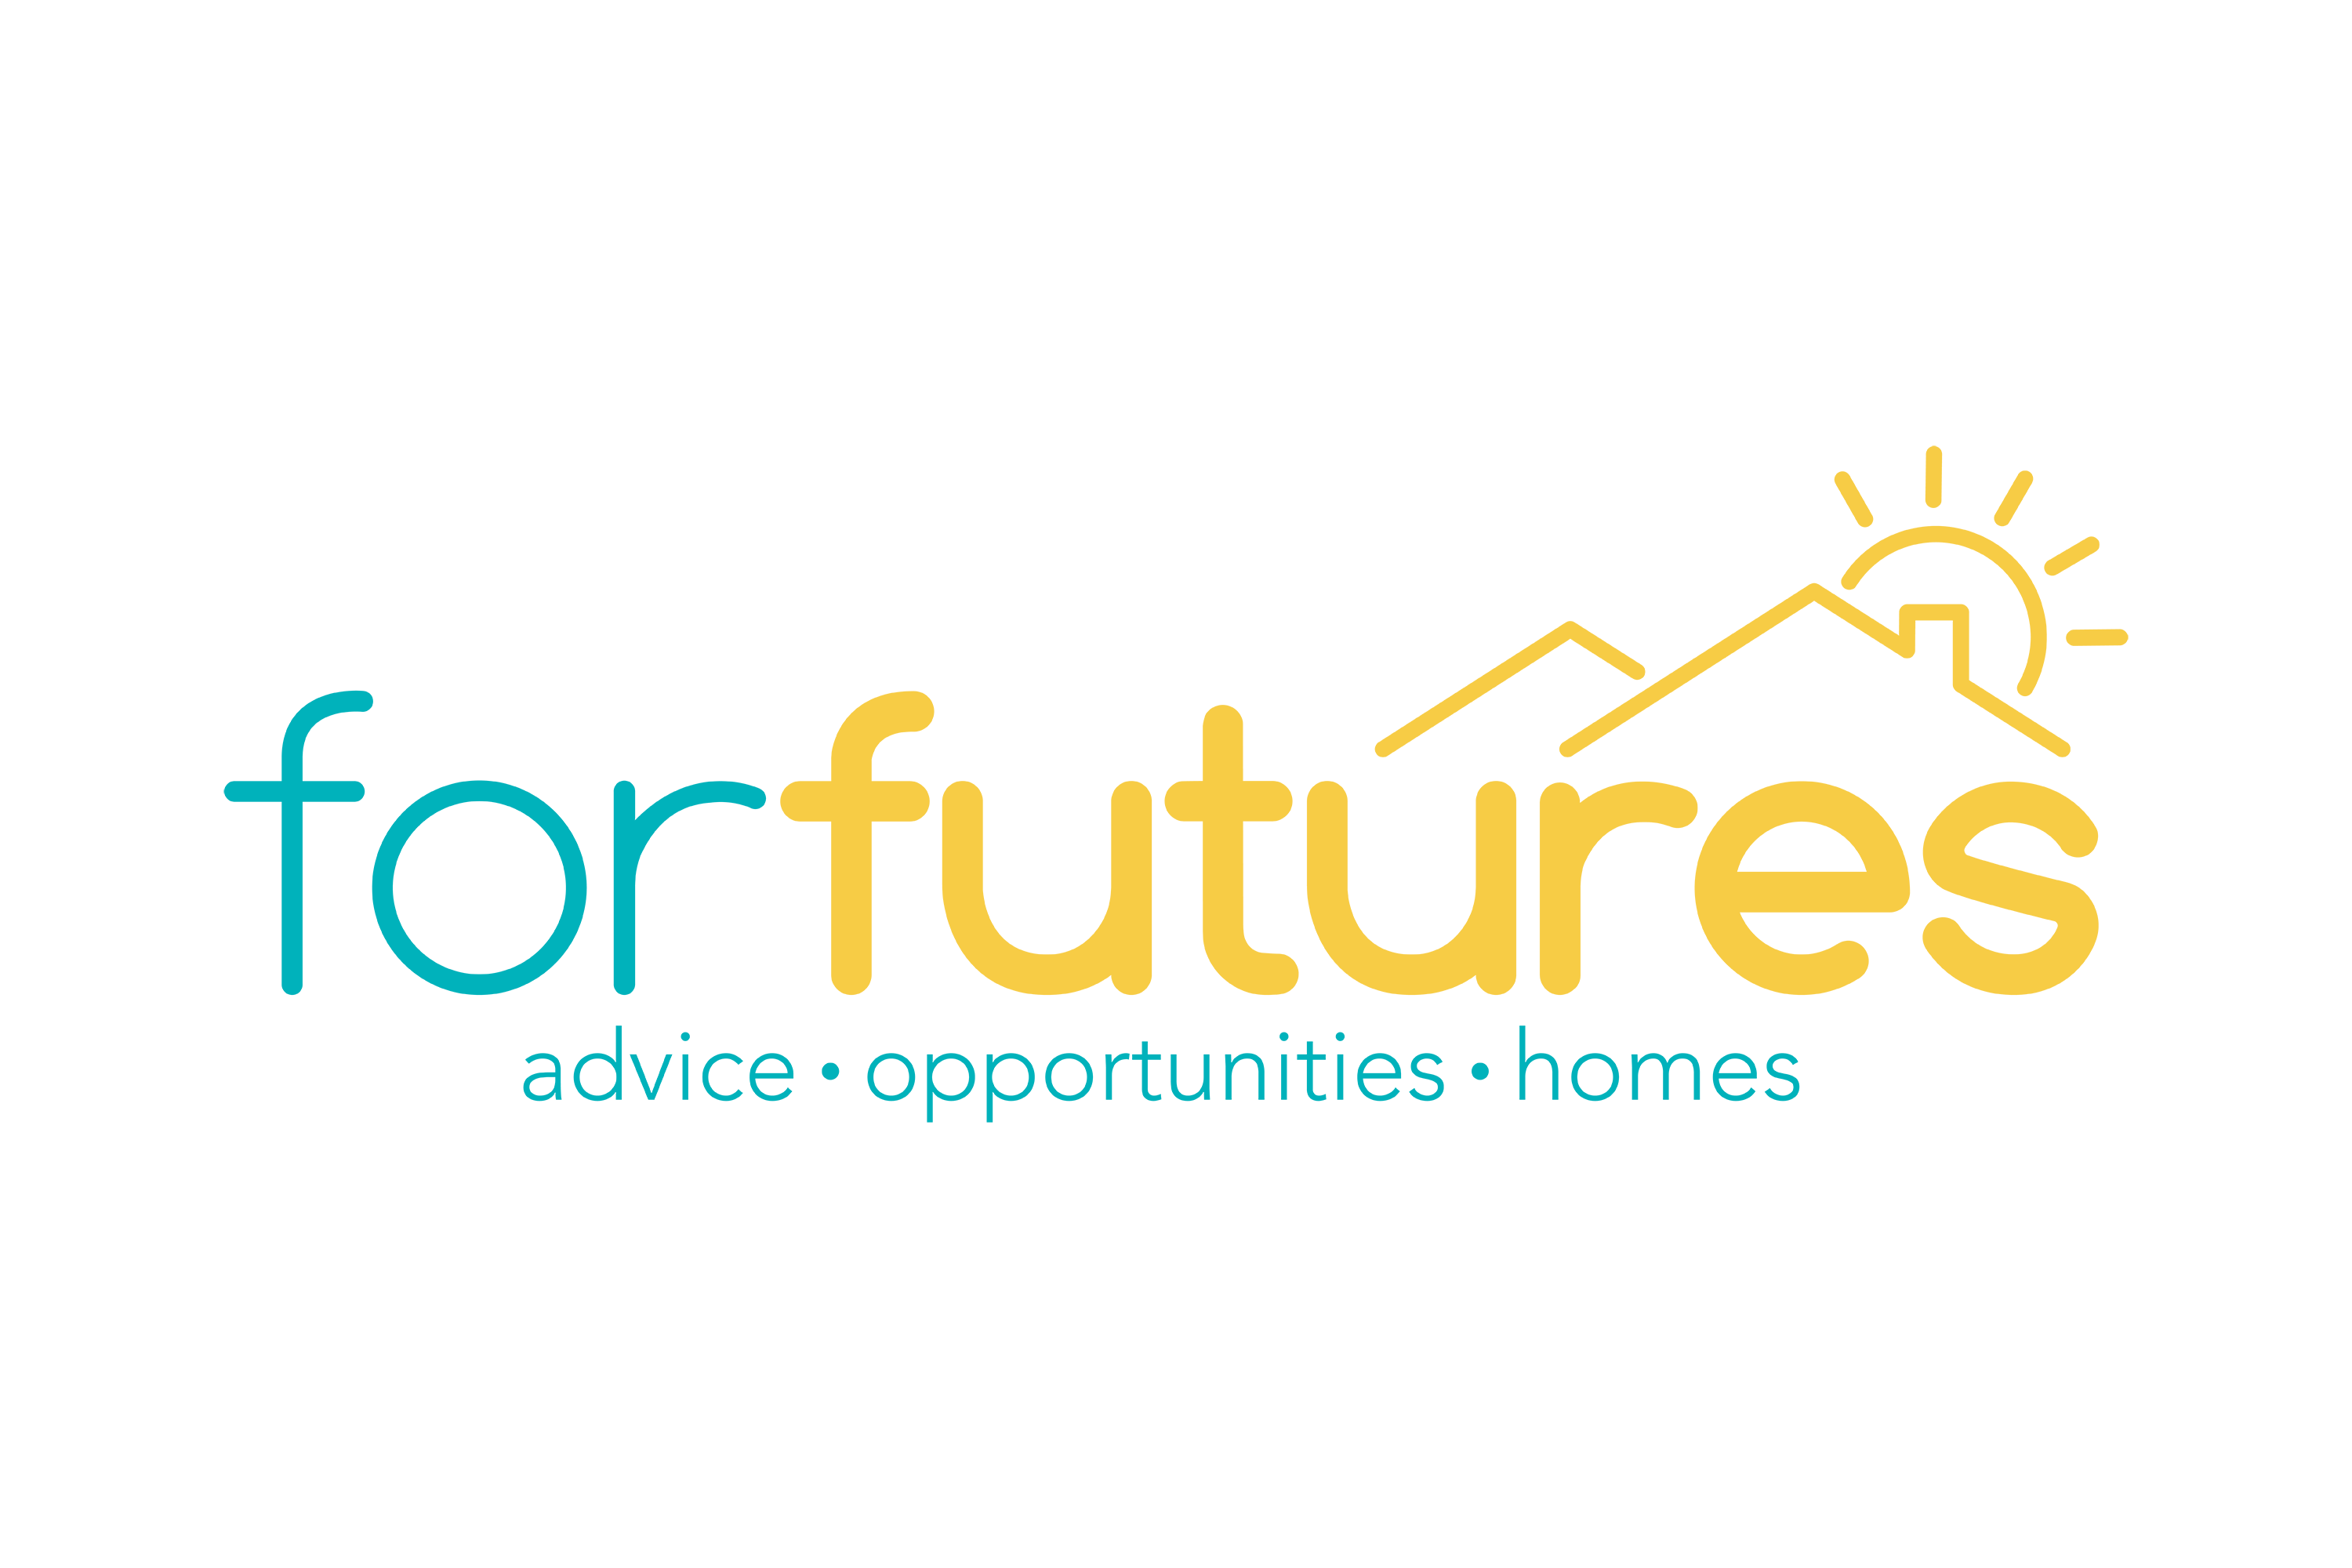 blue and yellow logo for forfutures, showing rofotops with sunrising over and the words 'advice, opportunities, homes'